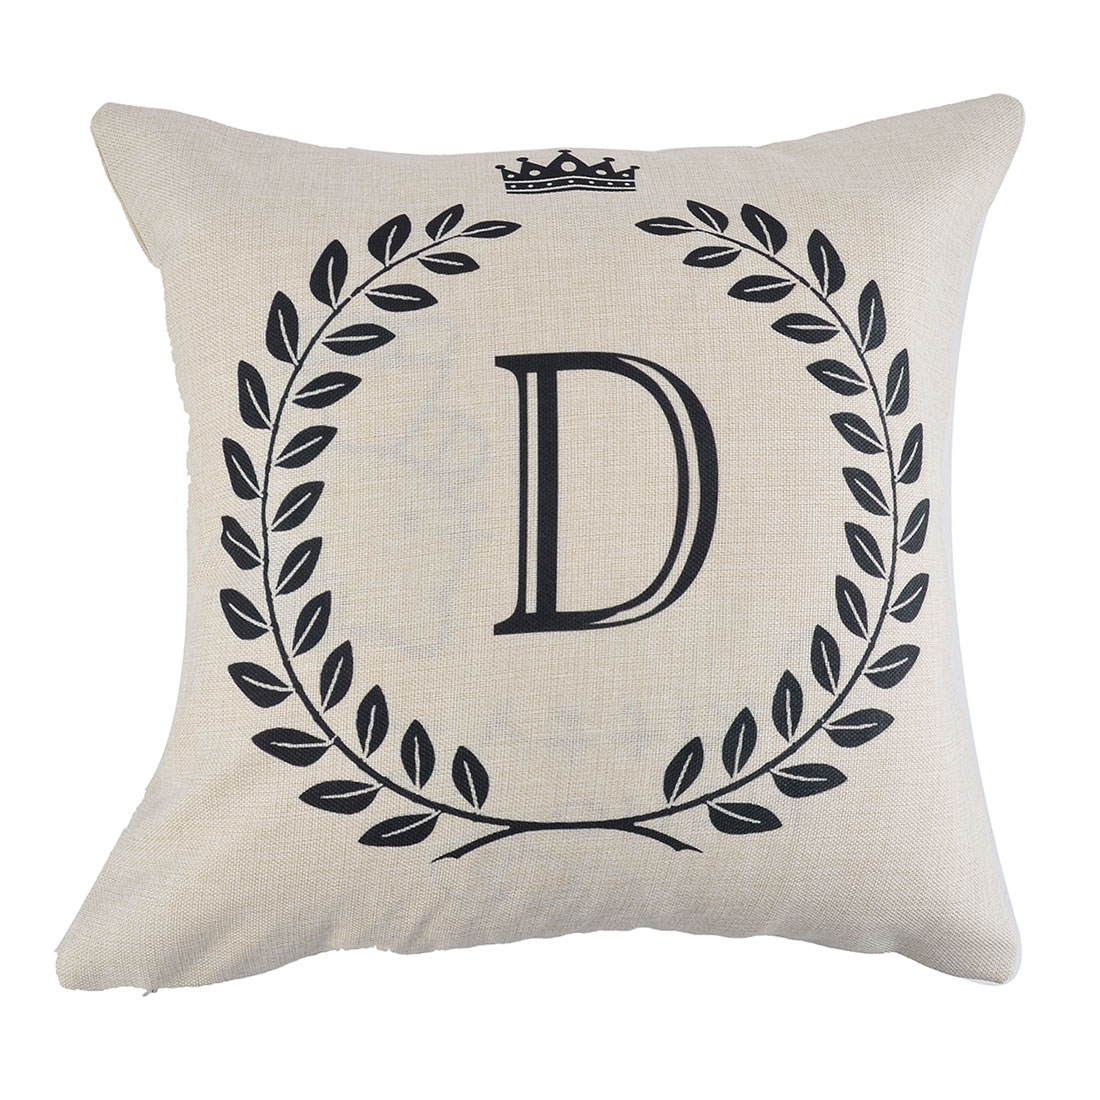 Home Cotton Linen Letter D Pattern Zippered Pillow Cushion Cover 18 x 18 Inches